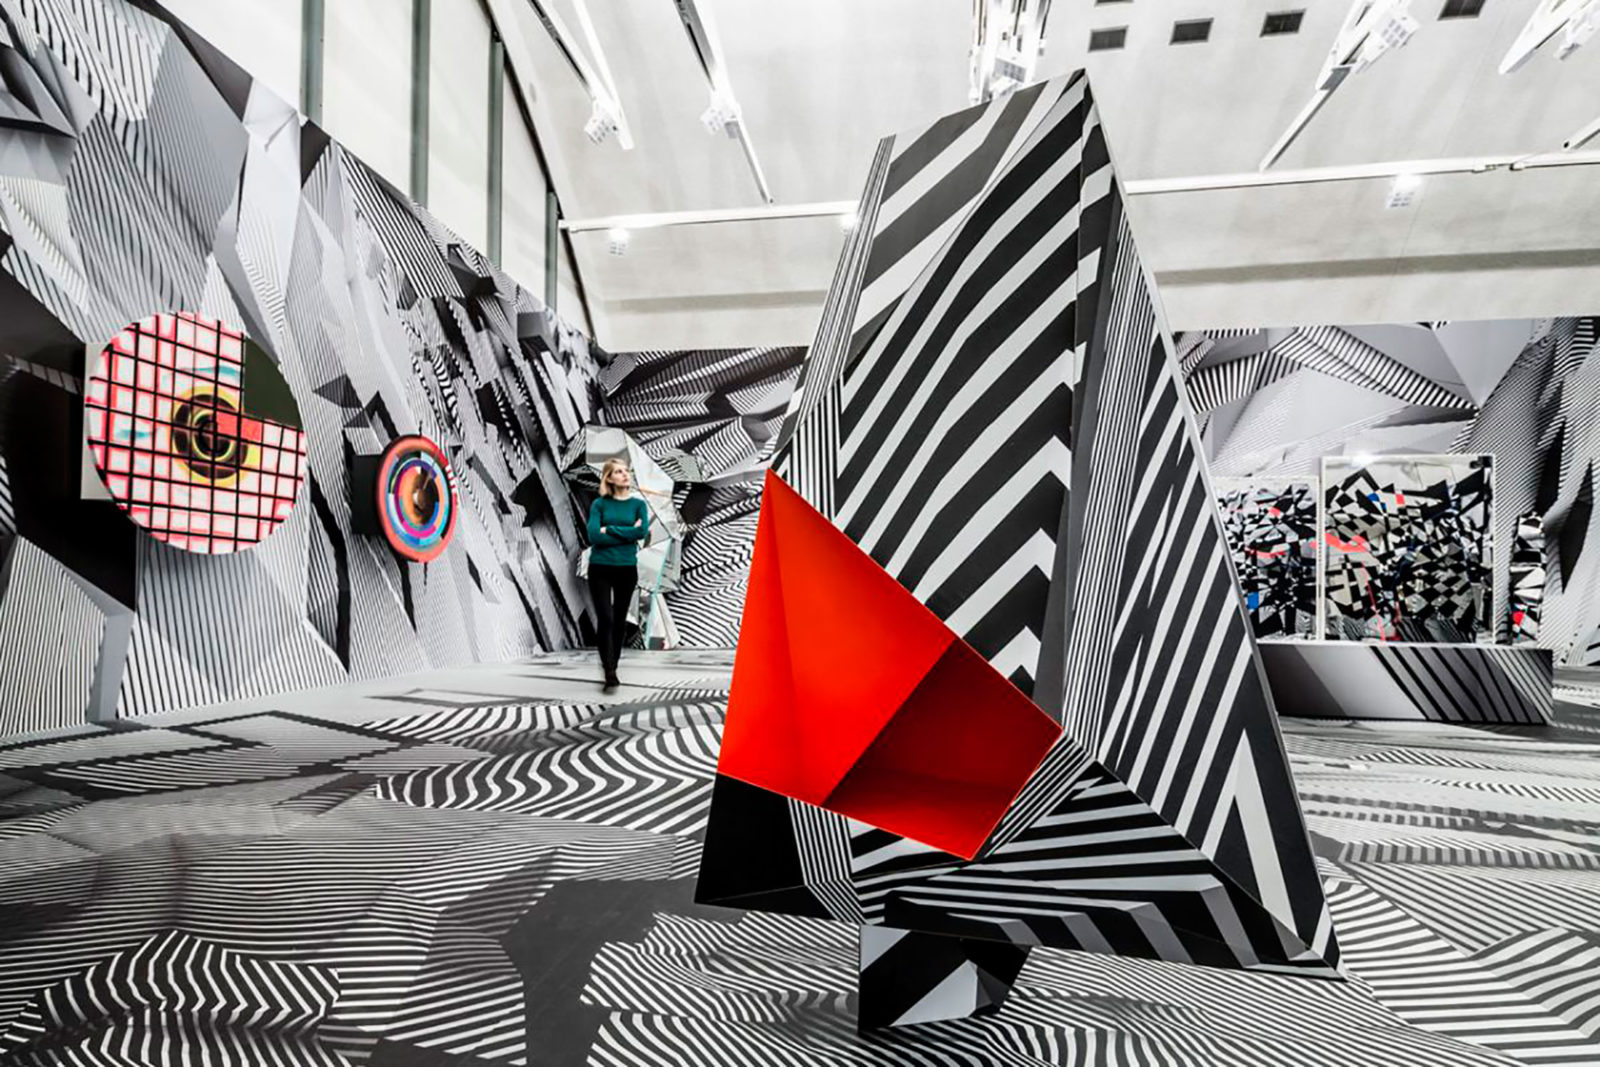 Tobias Rehberger, Home and Away and Outside, Schirn Kunsthalle, Frankfurt, 2014